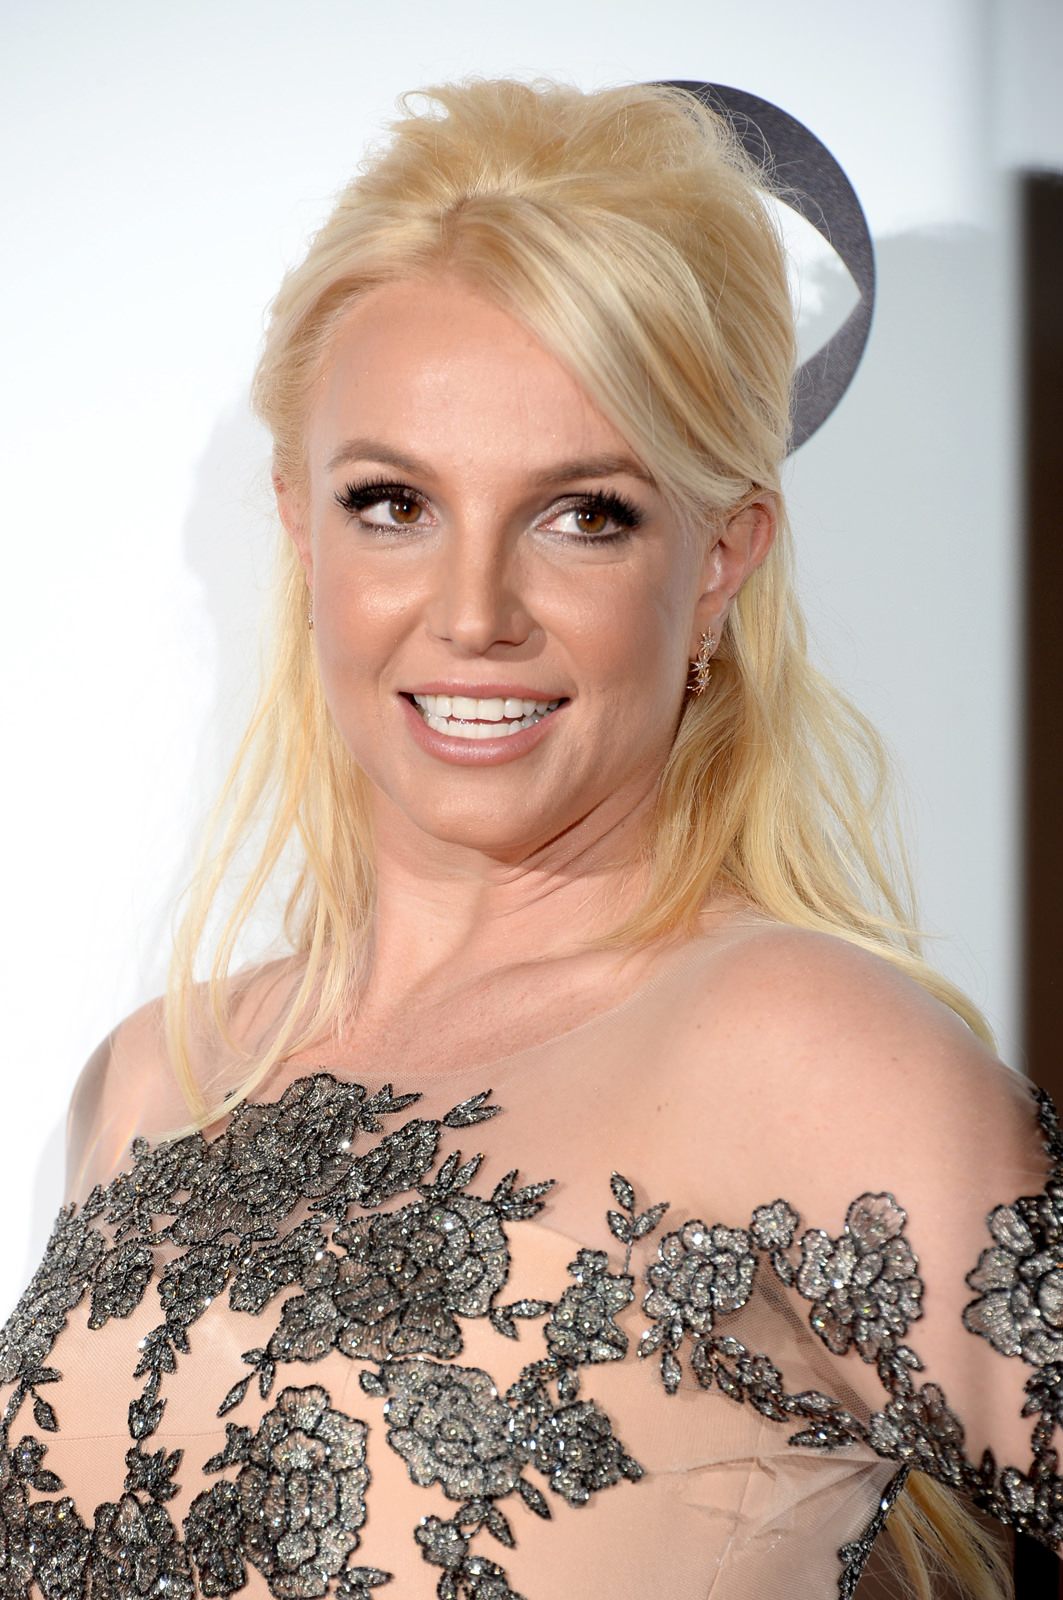 Britney Spears Photo Gallery